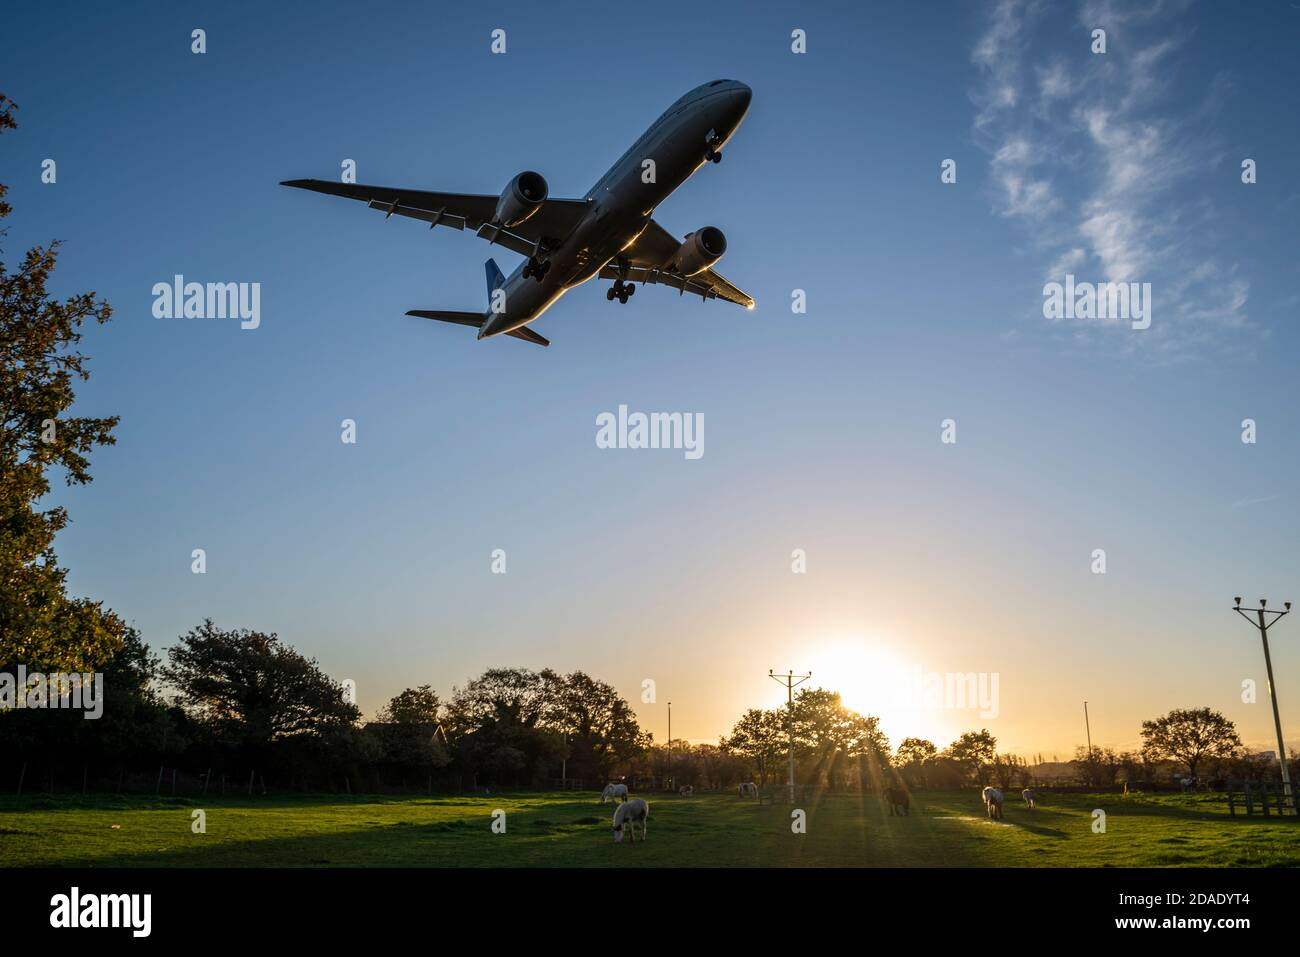 london-heathrow-airport-london-uk-12th-nov-2020-overnight-rain-has-cleared-into-a-bright-sunny-but-cool-morning-as-the-first-arrivals-land-at-heathrow-the-horses-in-the-field-under-the-approach-are-unperturbed-by-the-jet-planes-passing-overhead-2DADYT4.jpg